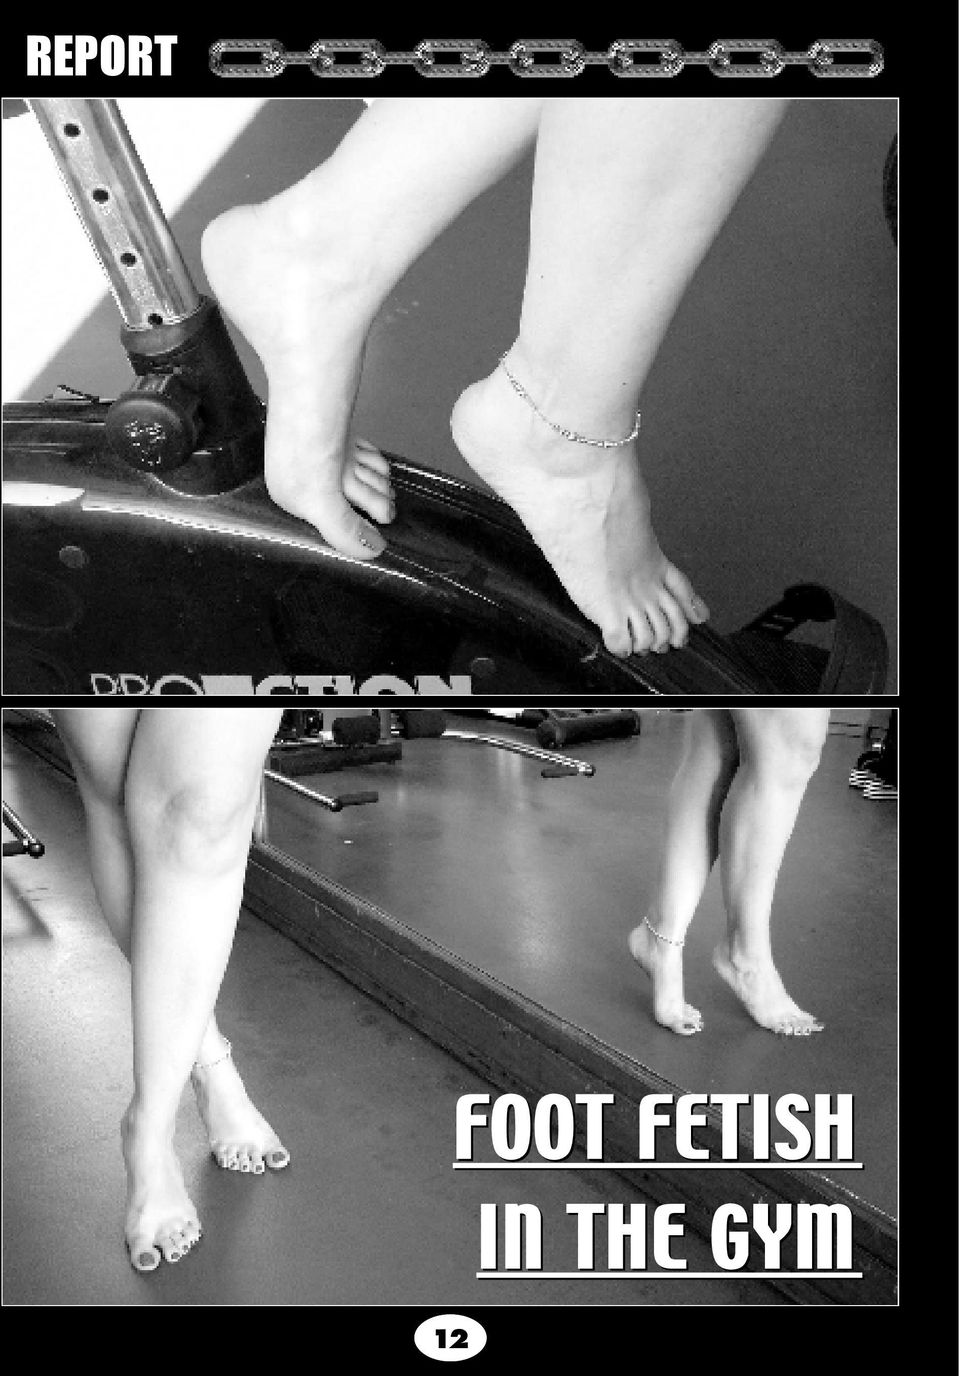 FETISH IN